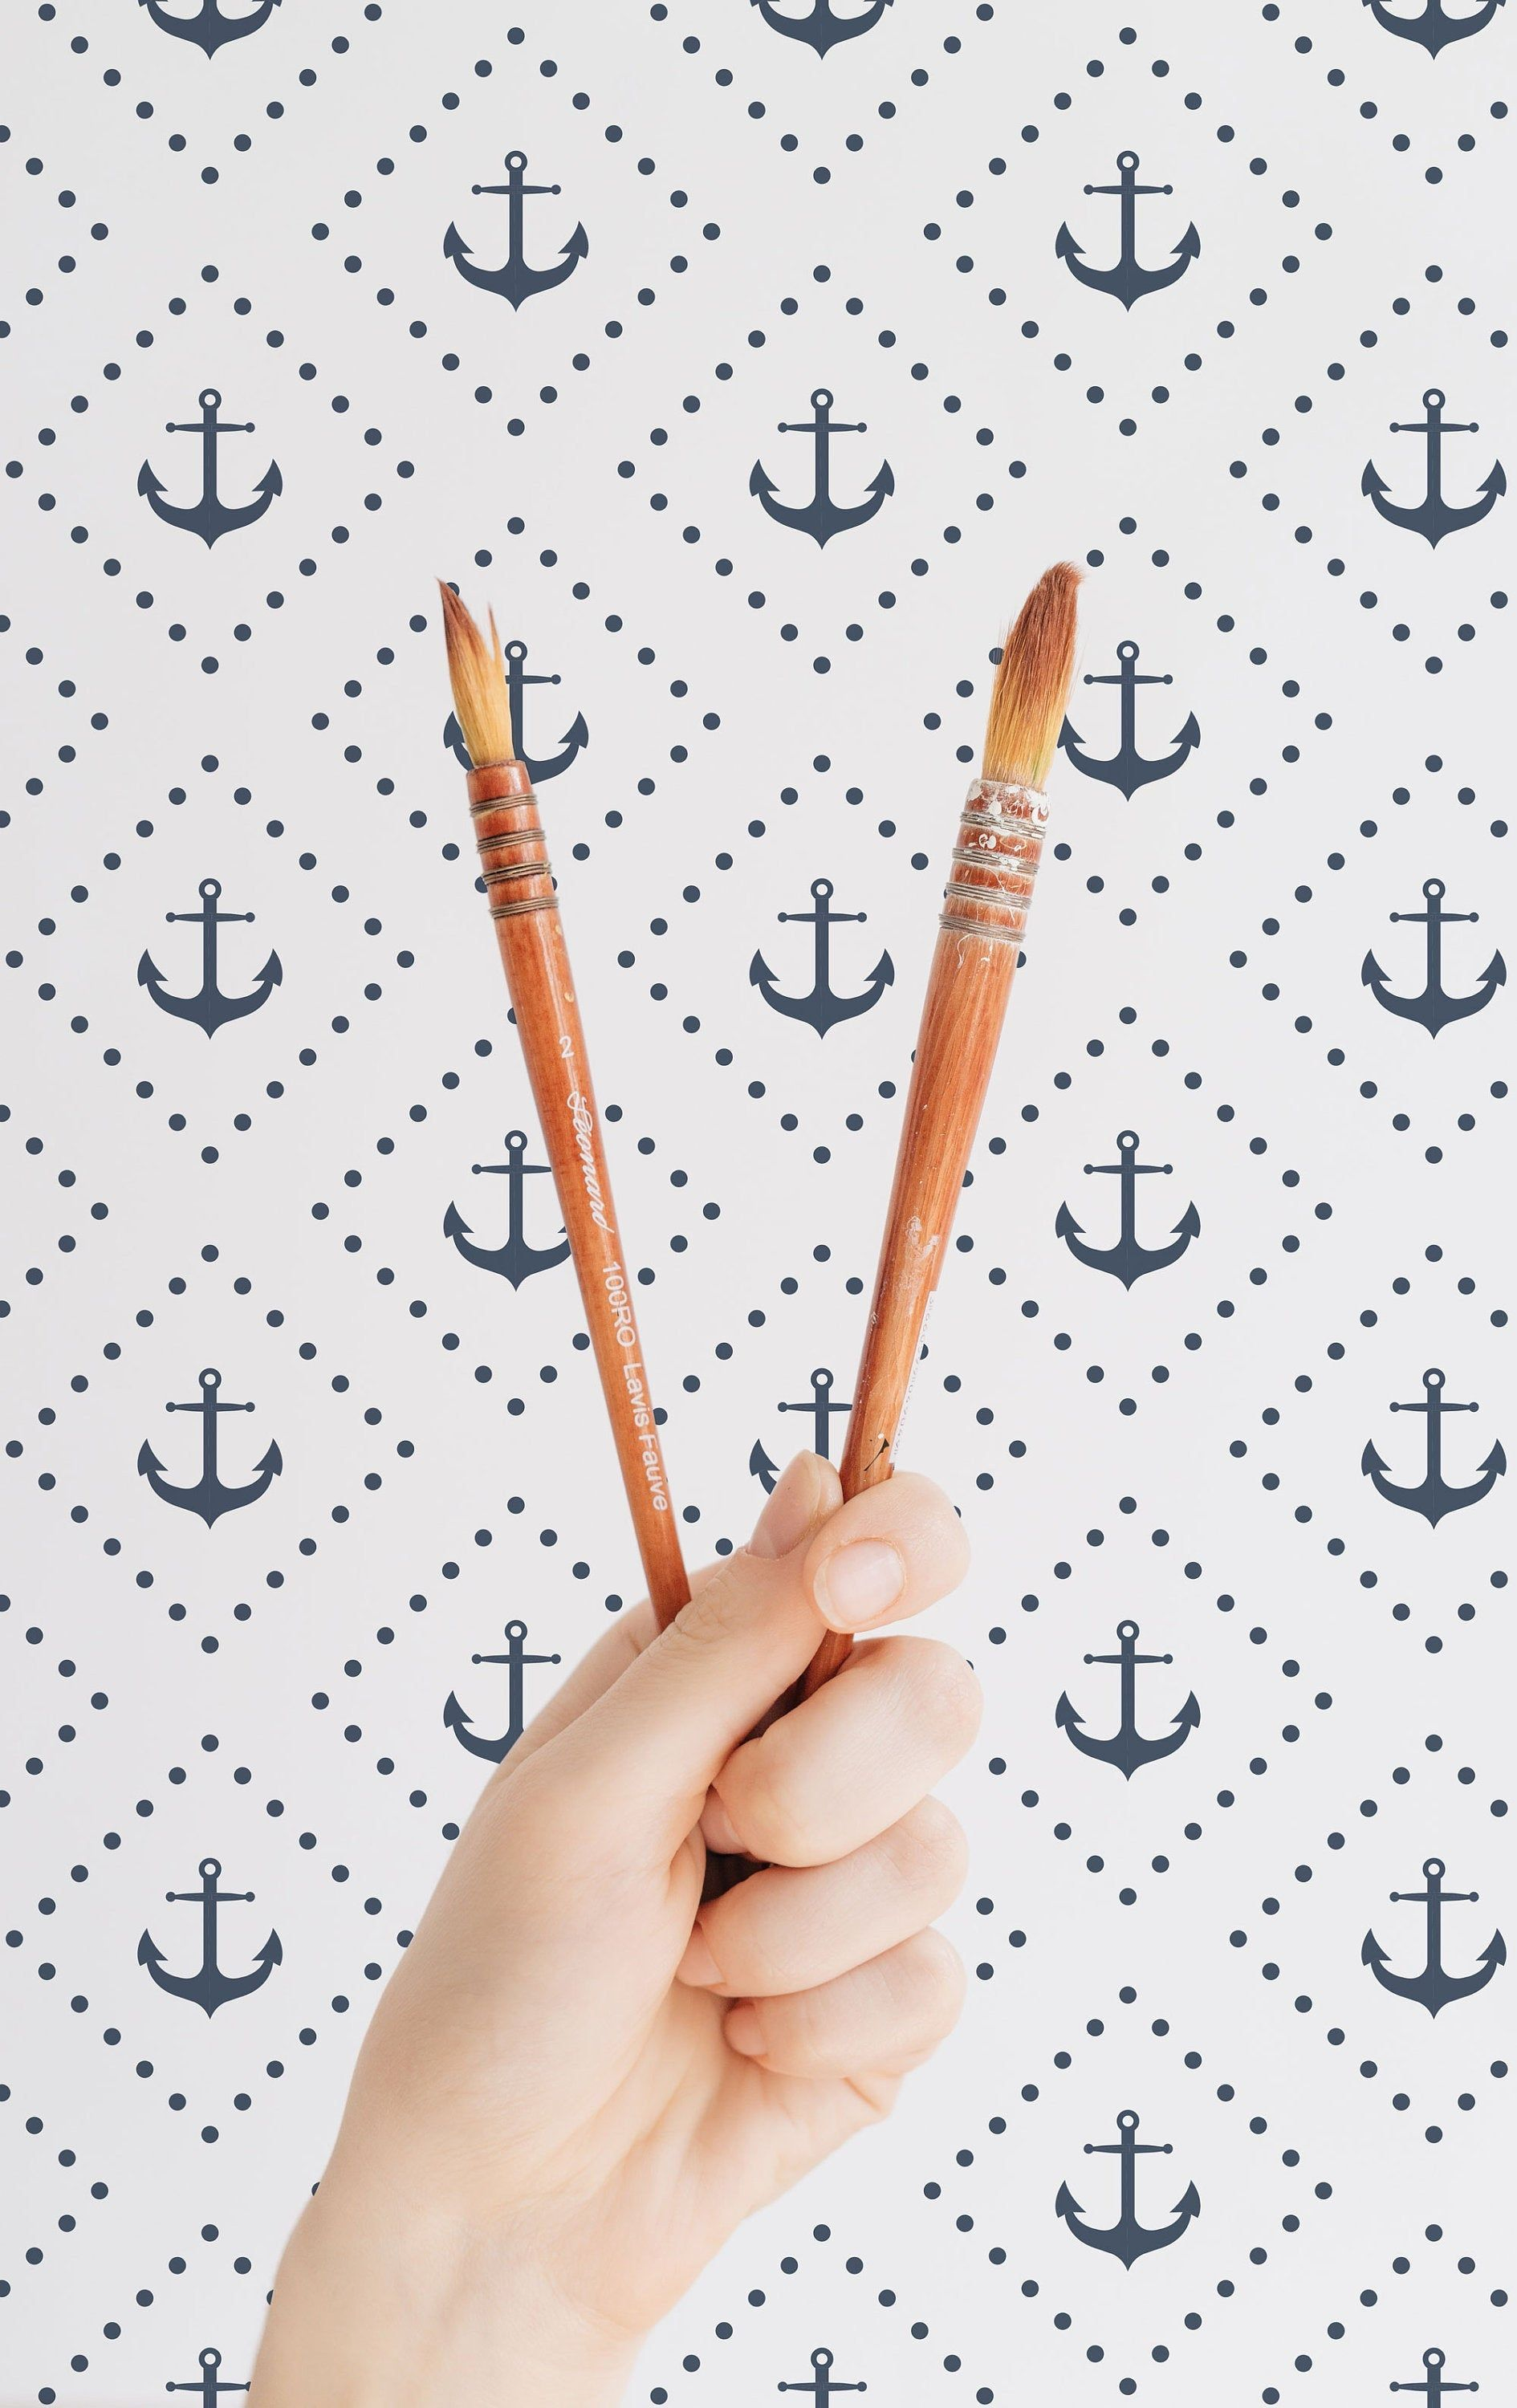 Nautical Removable Wallpaper Peel And Stick Nautical Etsy Nautical Wallpaper Nautical Wallpaper Pattern Removable Wallpaper